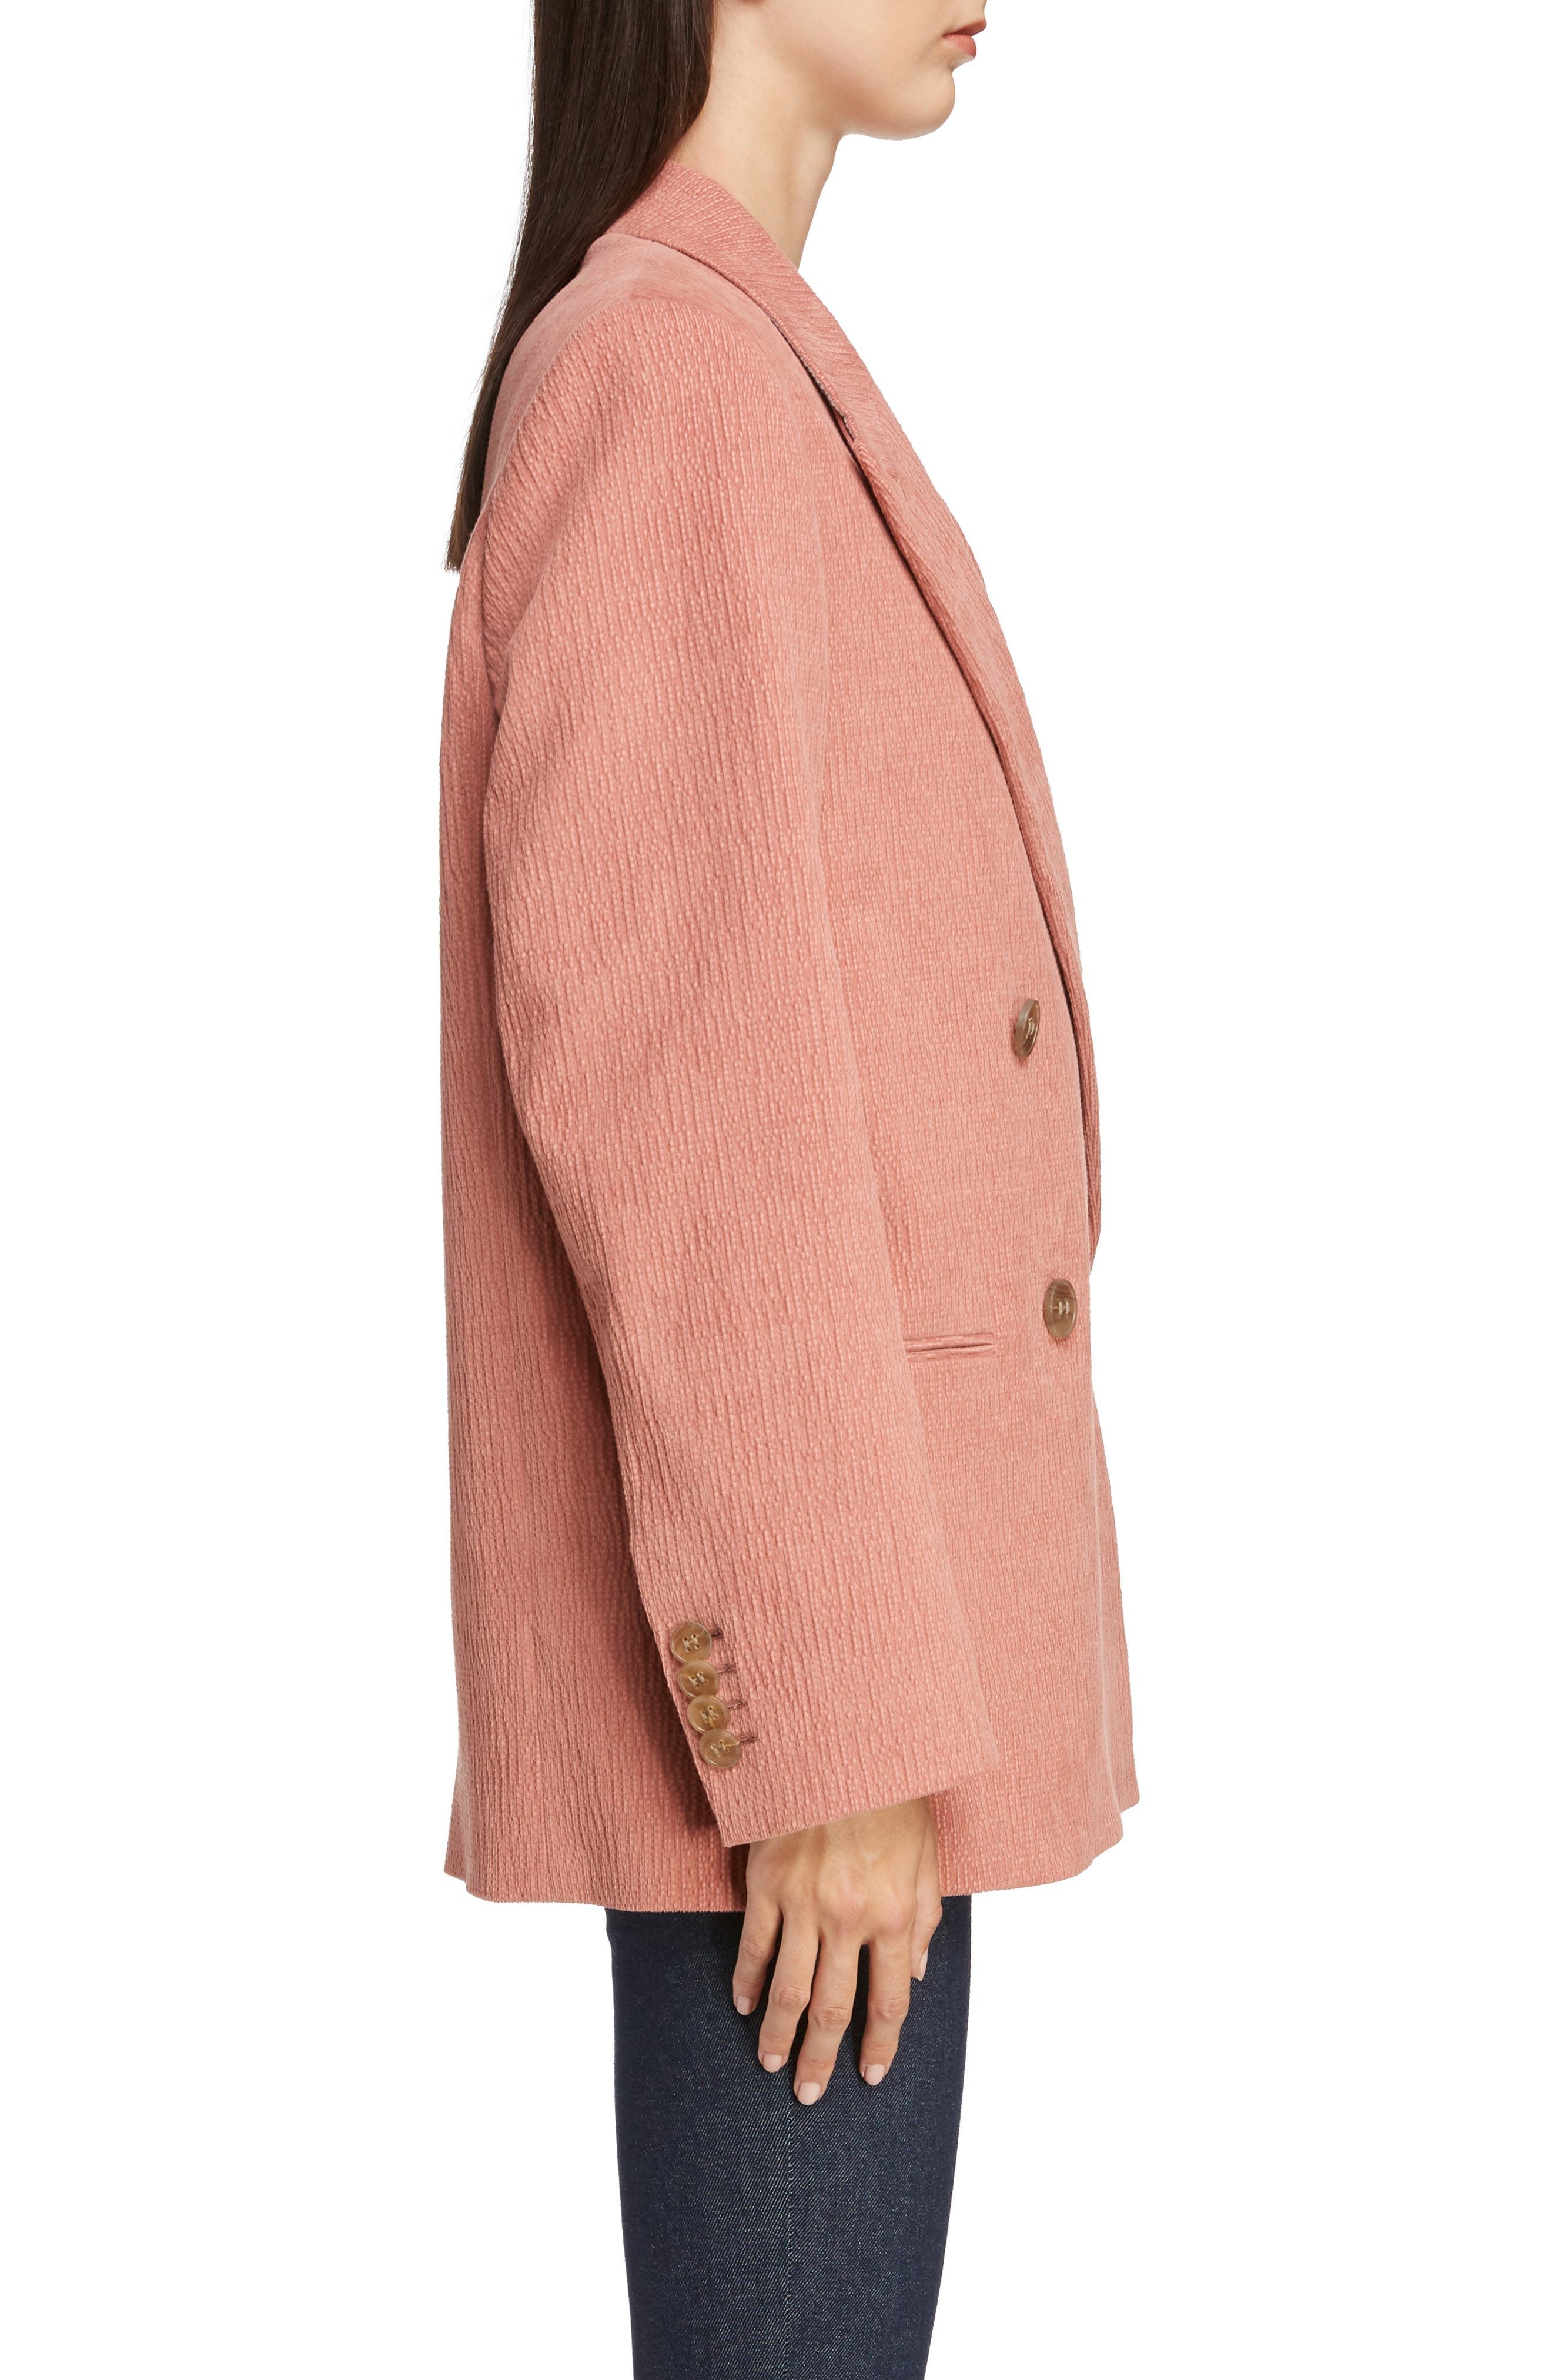 ACNE STUDIOS,                             Corduroy Double Breasted Blazer,                             Alternate thumbnail 3, color,                             OLD PINK